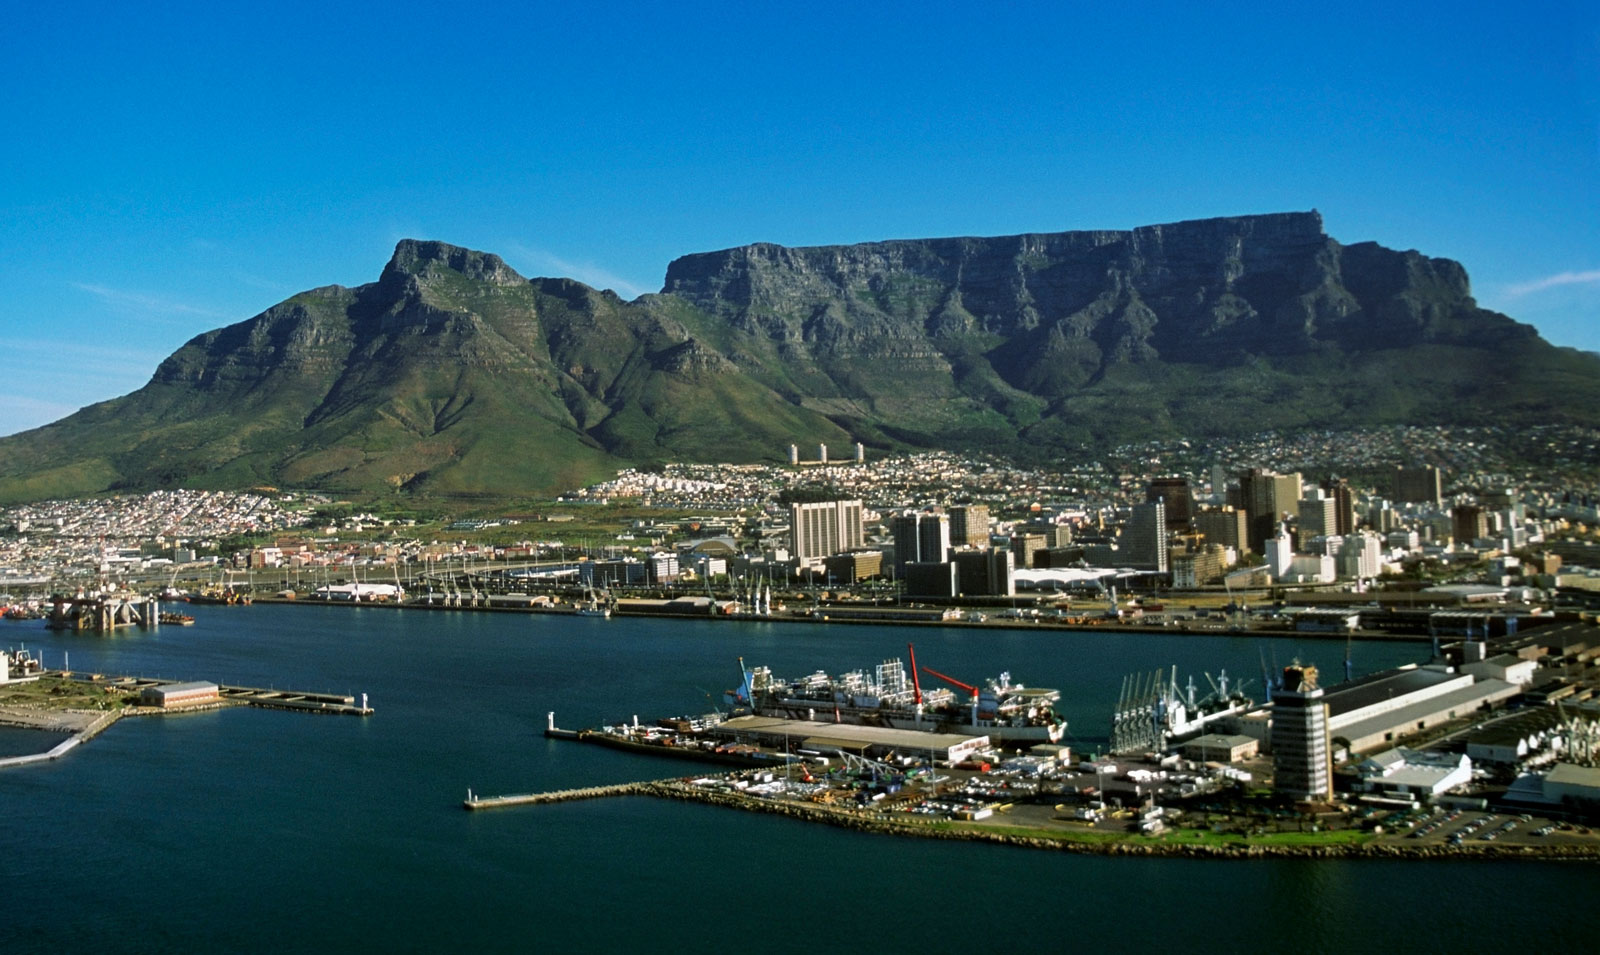 Where is Table Mountain?